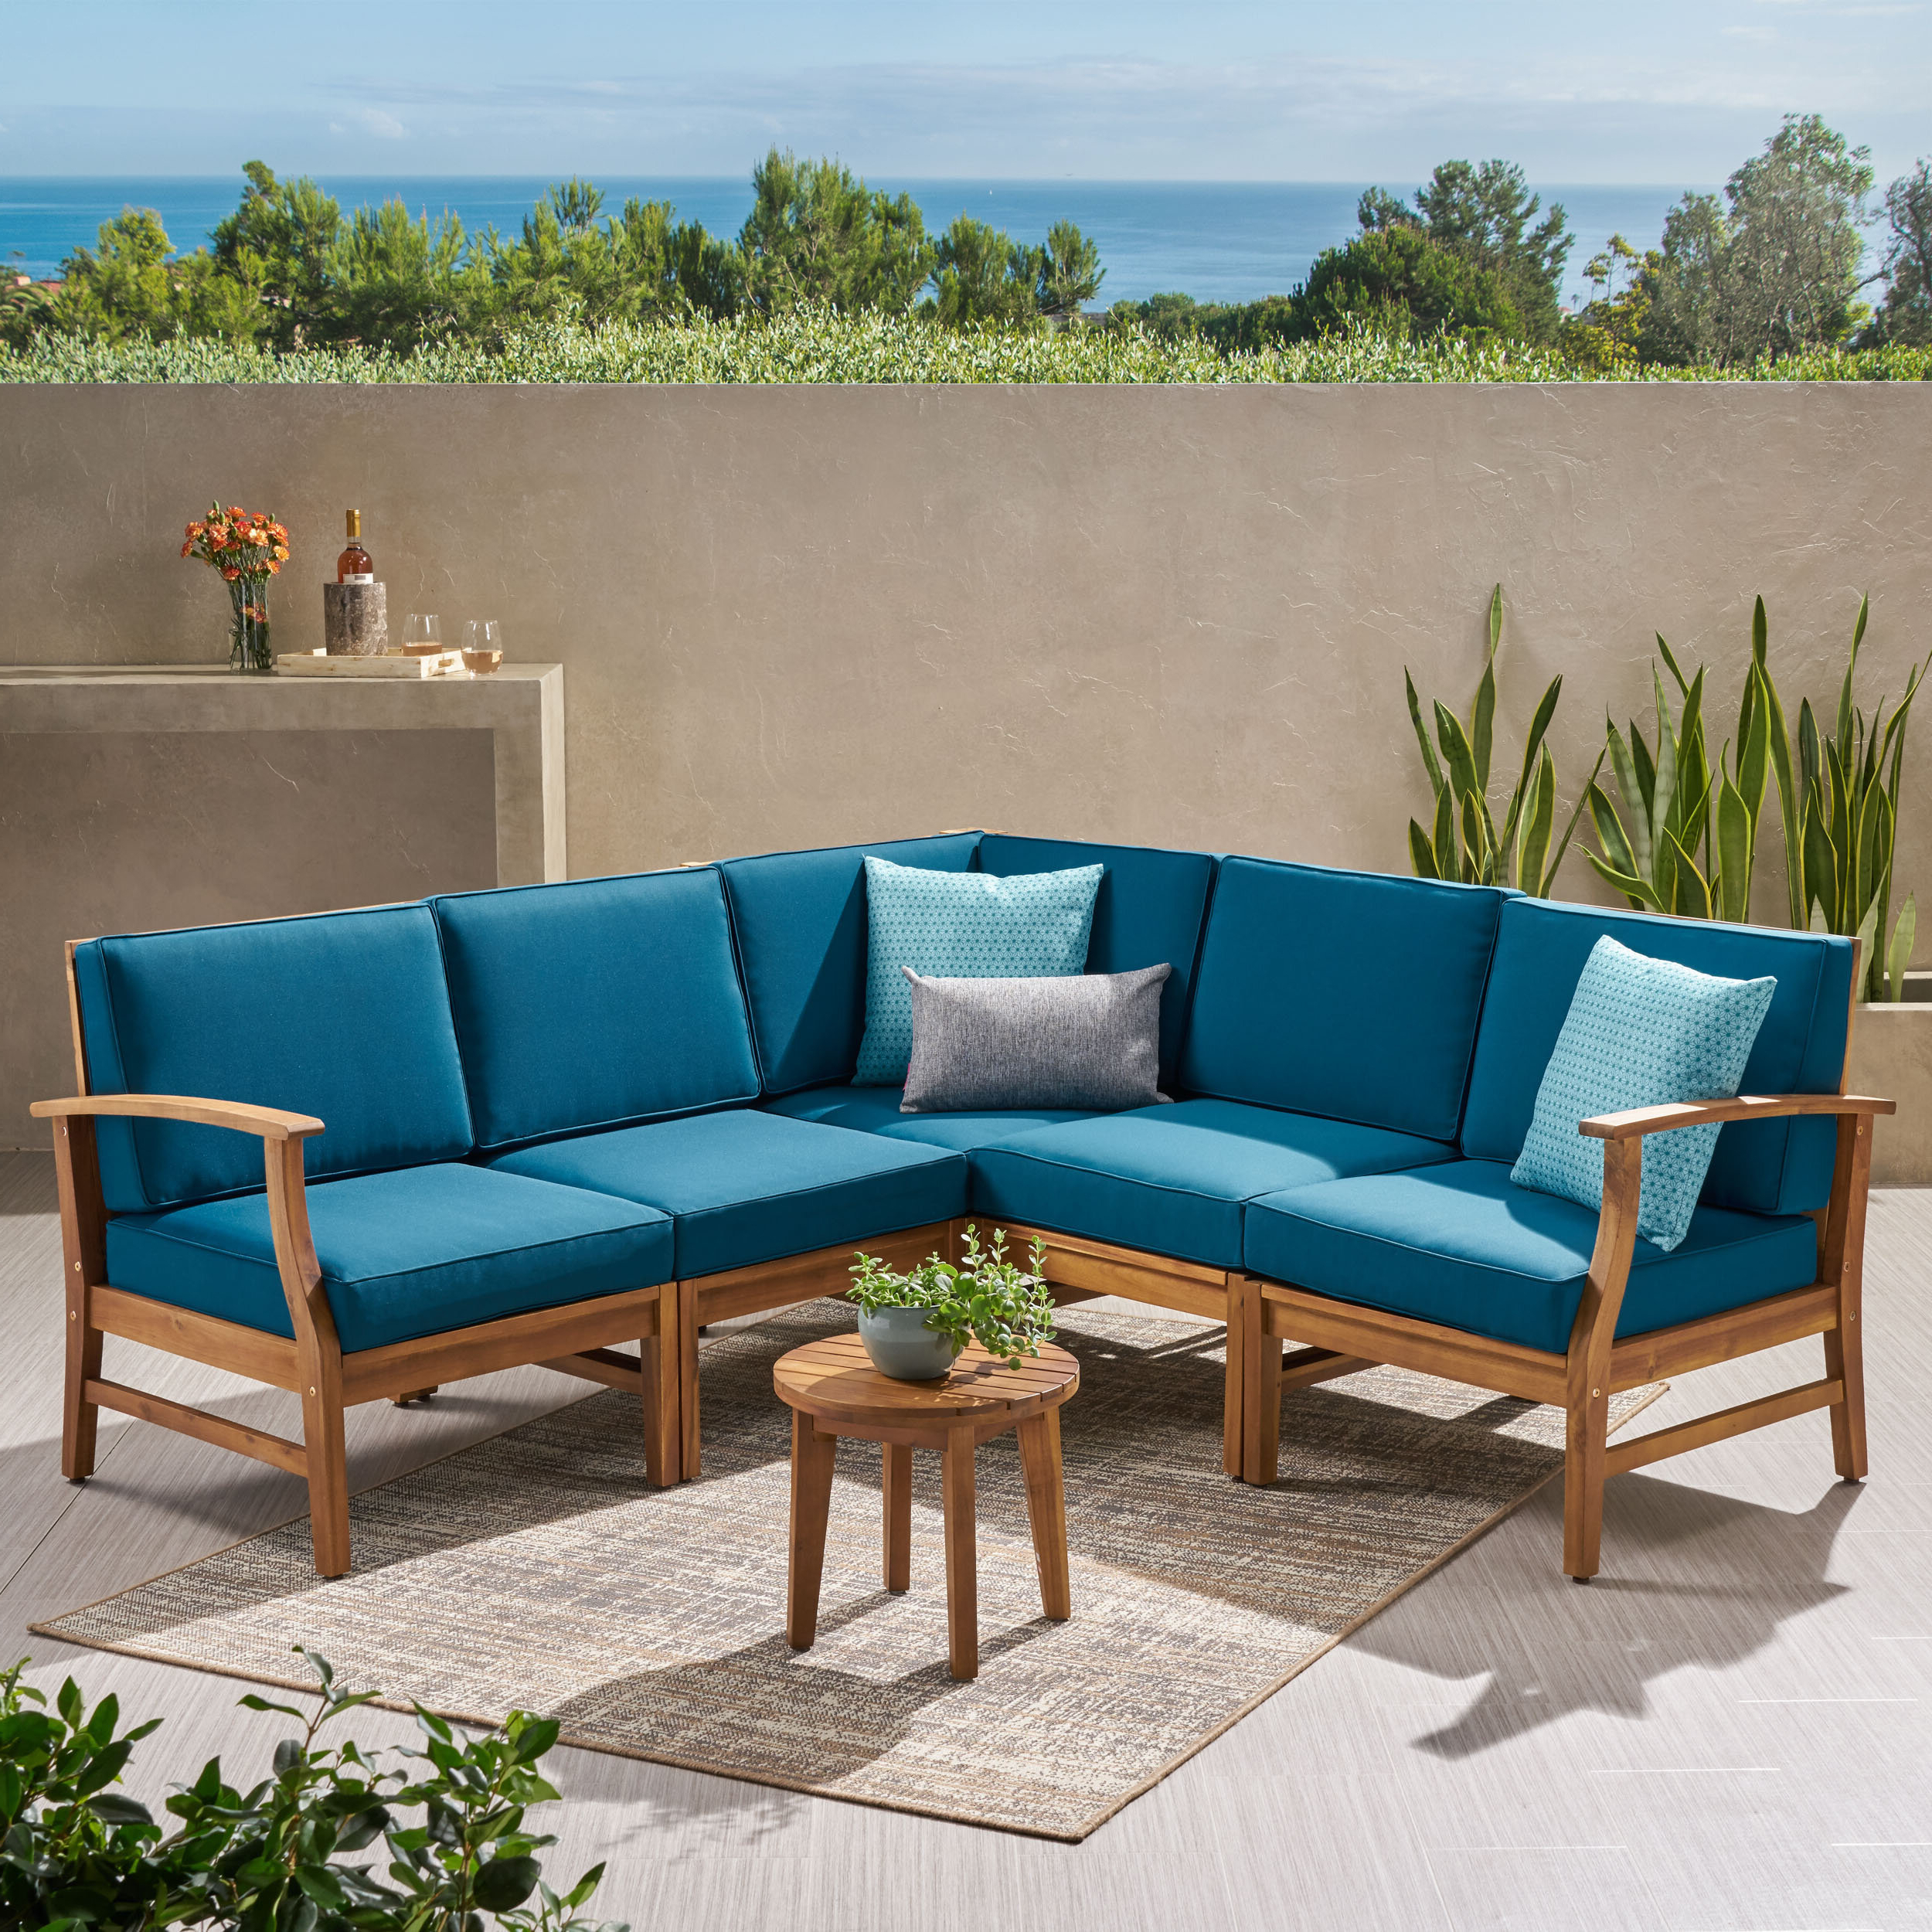 Most Recent Antonia Teak Patio Sectional With Cushions With Honeycutt Patio Sofas With Cushions (Gallery 11 of 25)